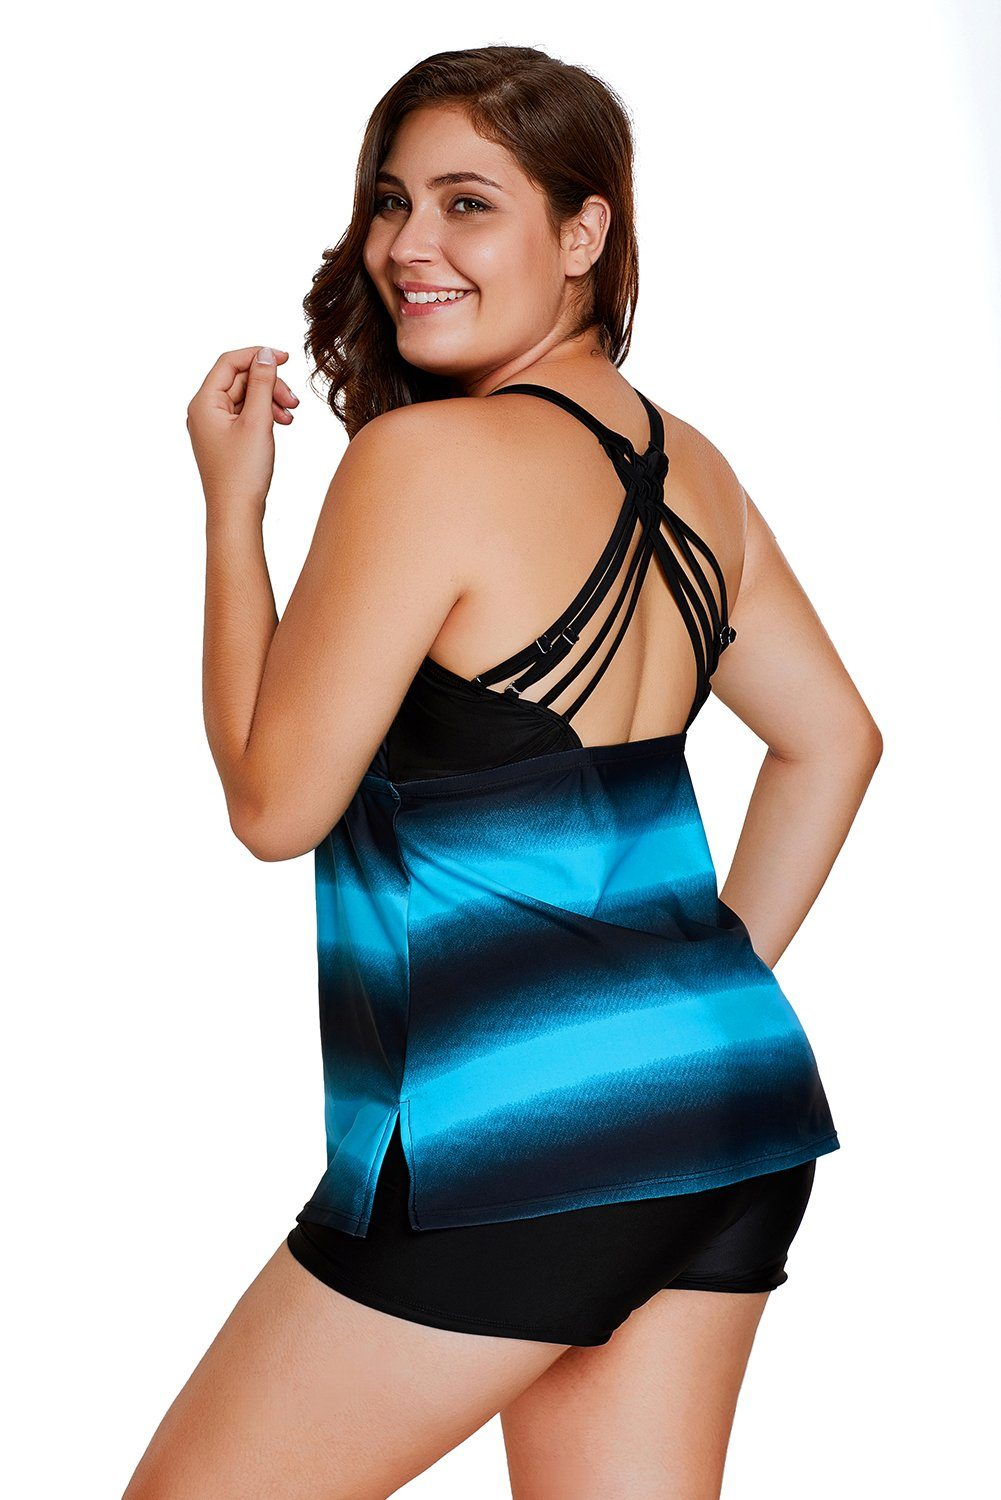 Women Multi Strap Back Blue Stripe Print Plus Size 2 Piece Tankini Swimsuit Bathing Suit Set - KaleaBoutique.com